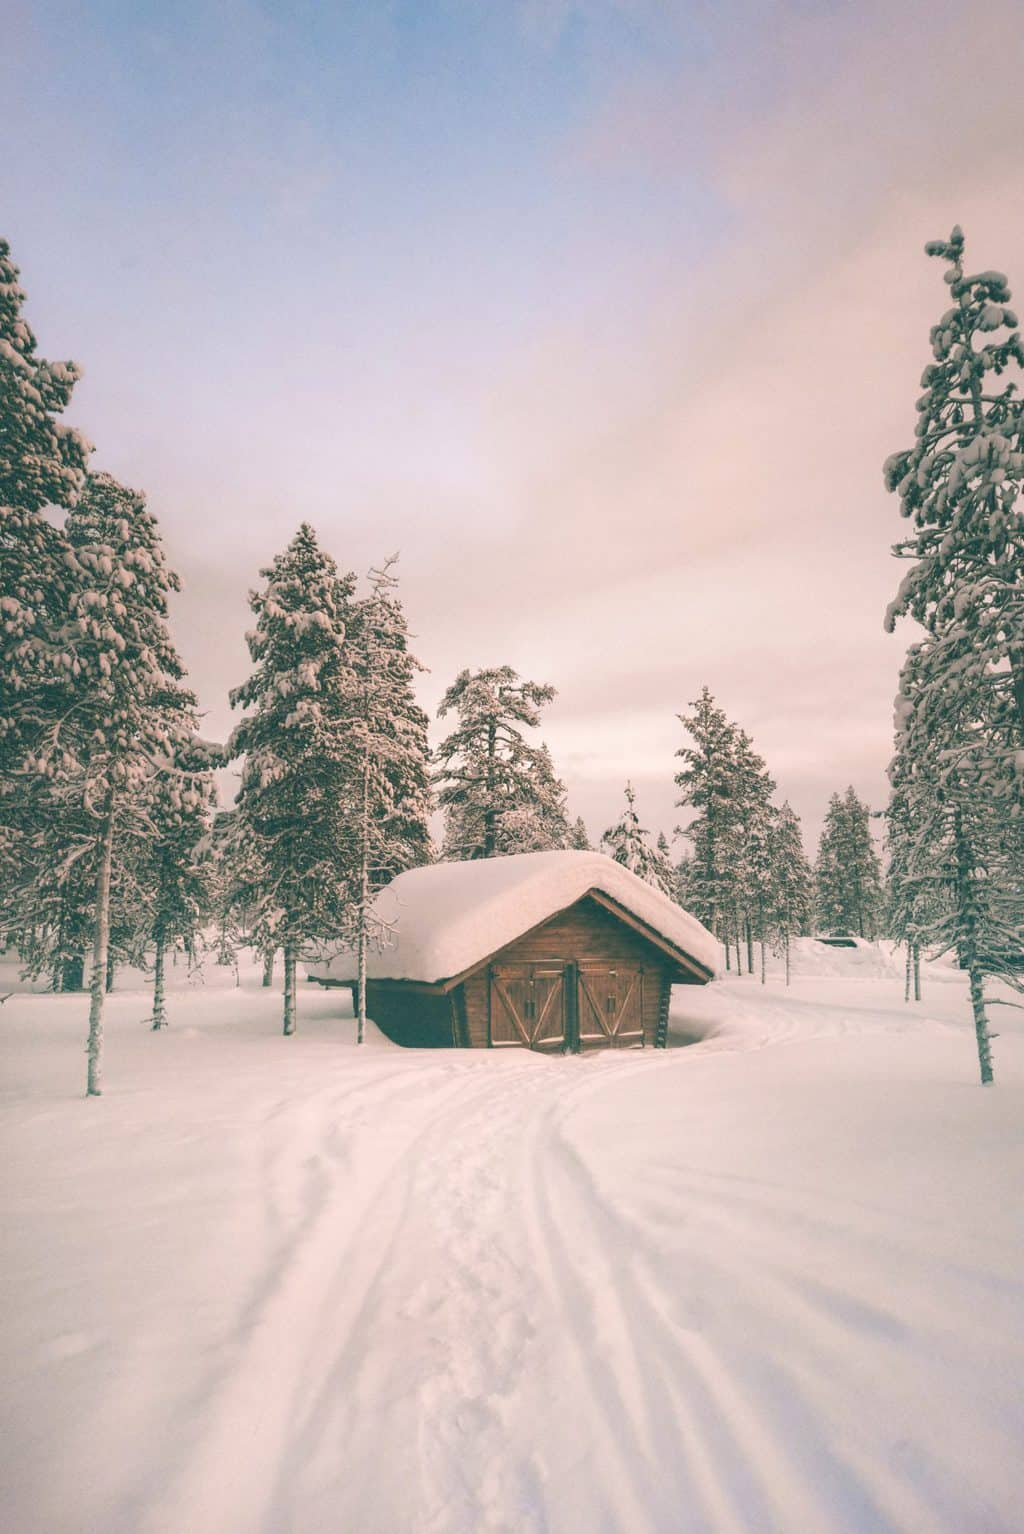 a cabin surrounded by snow Finnish Lapland, Lapland destinations, Lapland Finland, Inghams